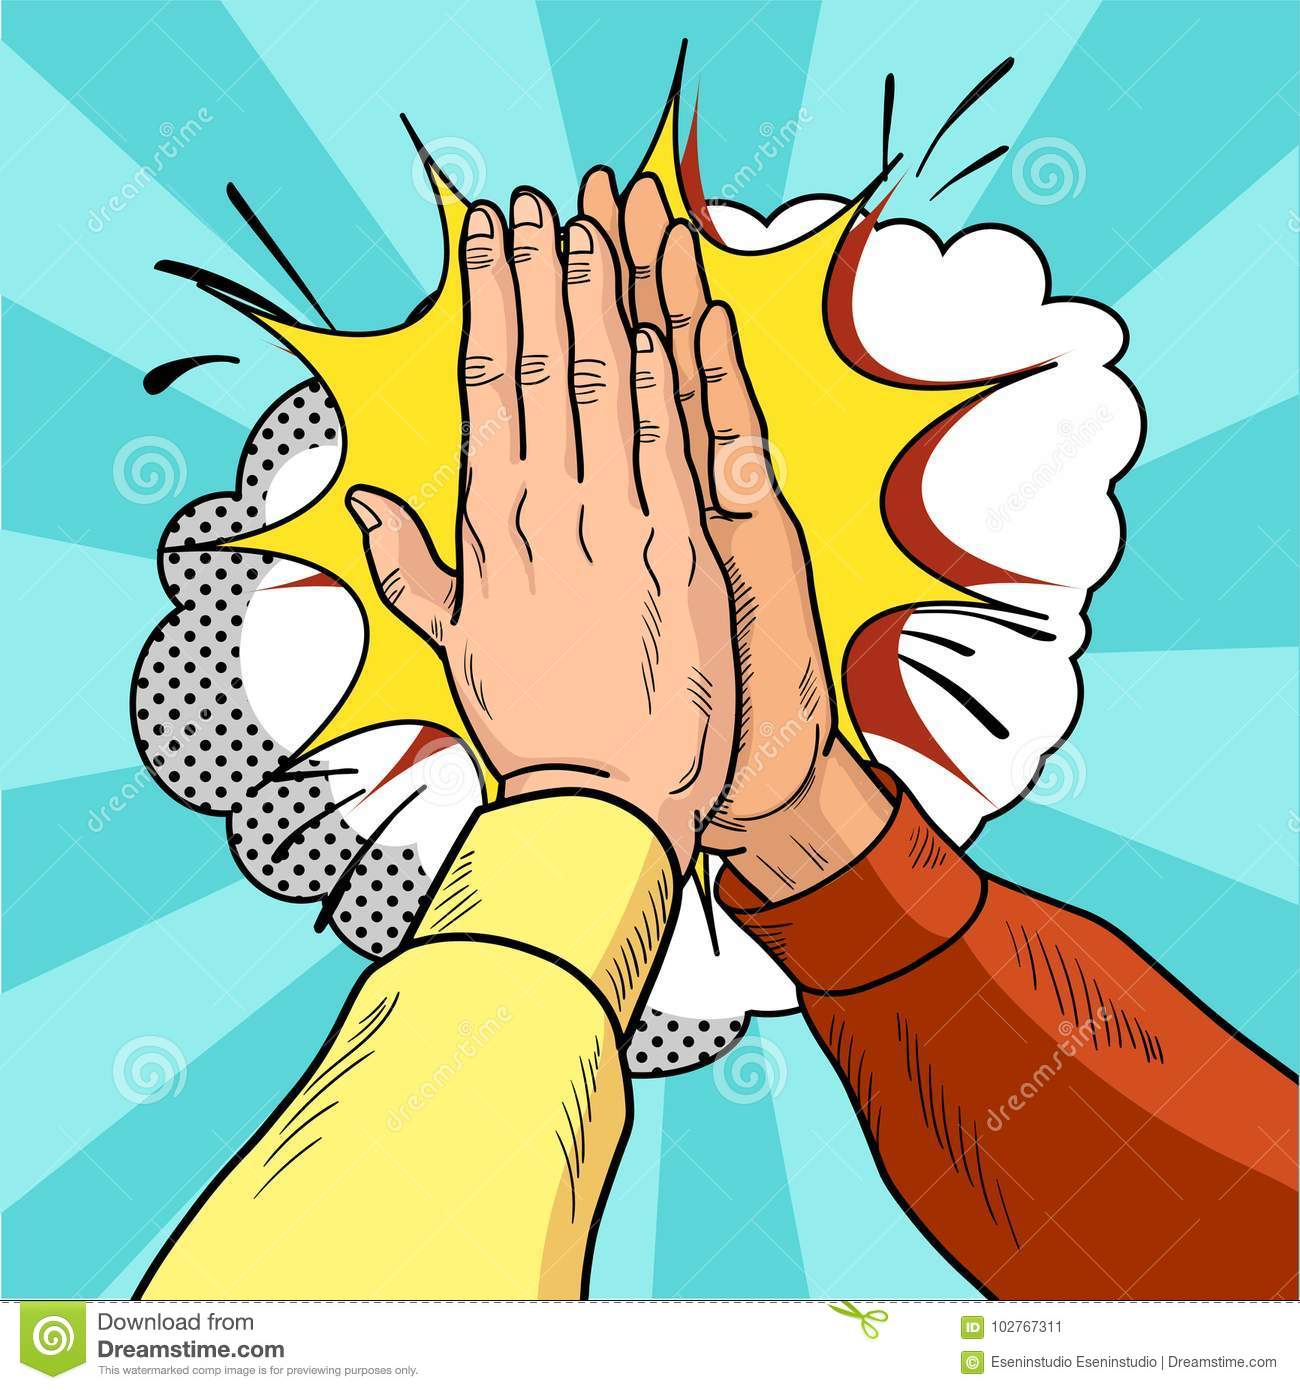 Hands give five pop art. Male hands in a gesture of success. Yellow and red sweaters. Vintage cartoon retro illustration.